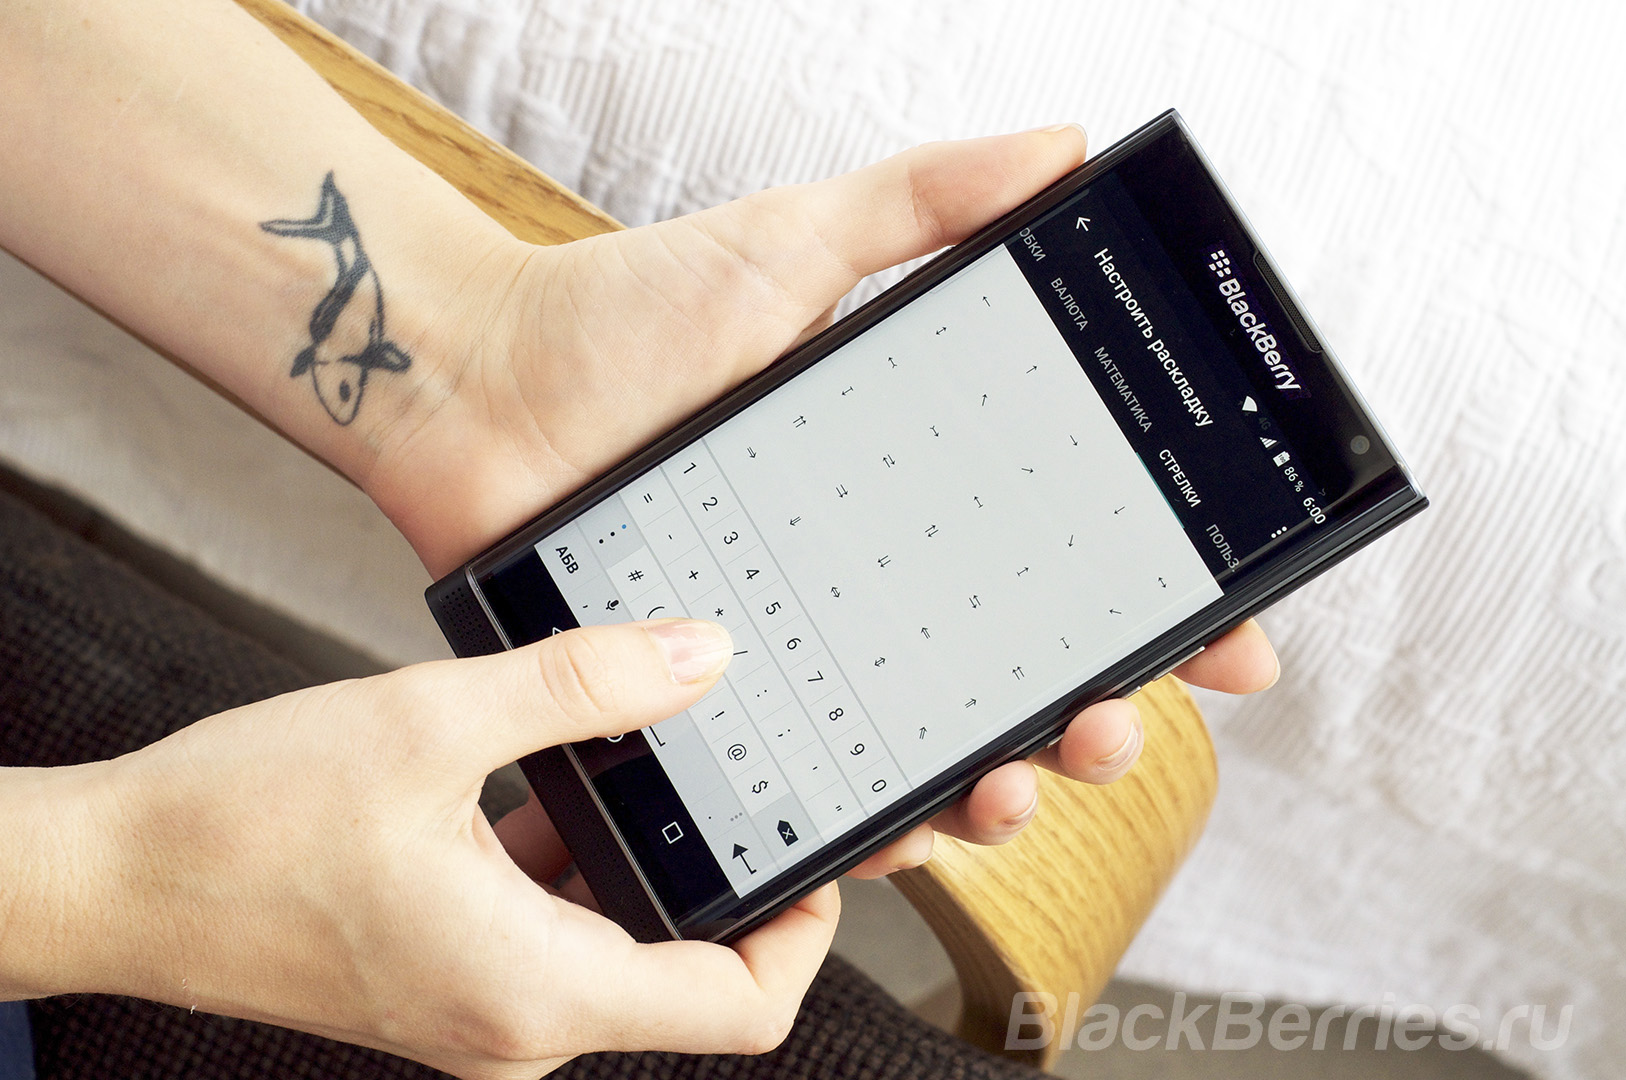 blackberry-priv-apps-19